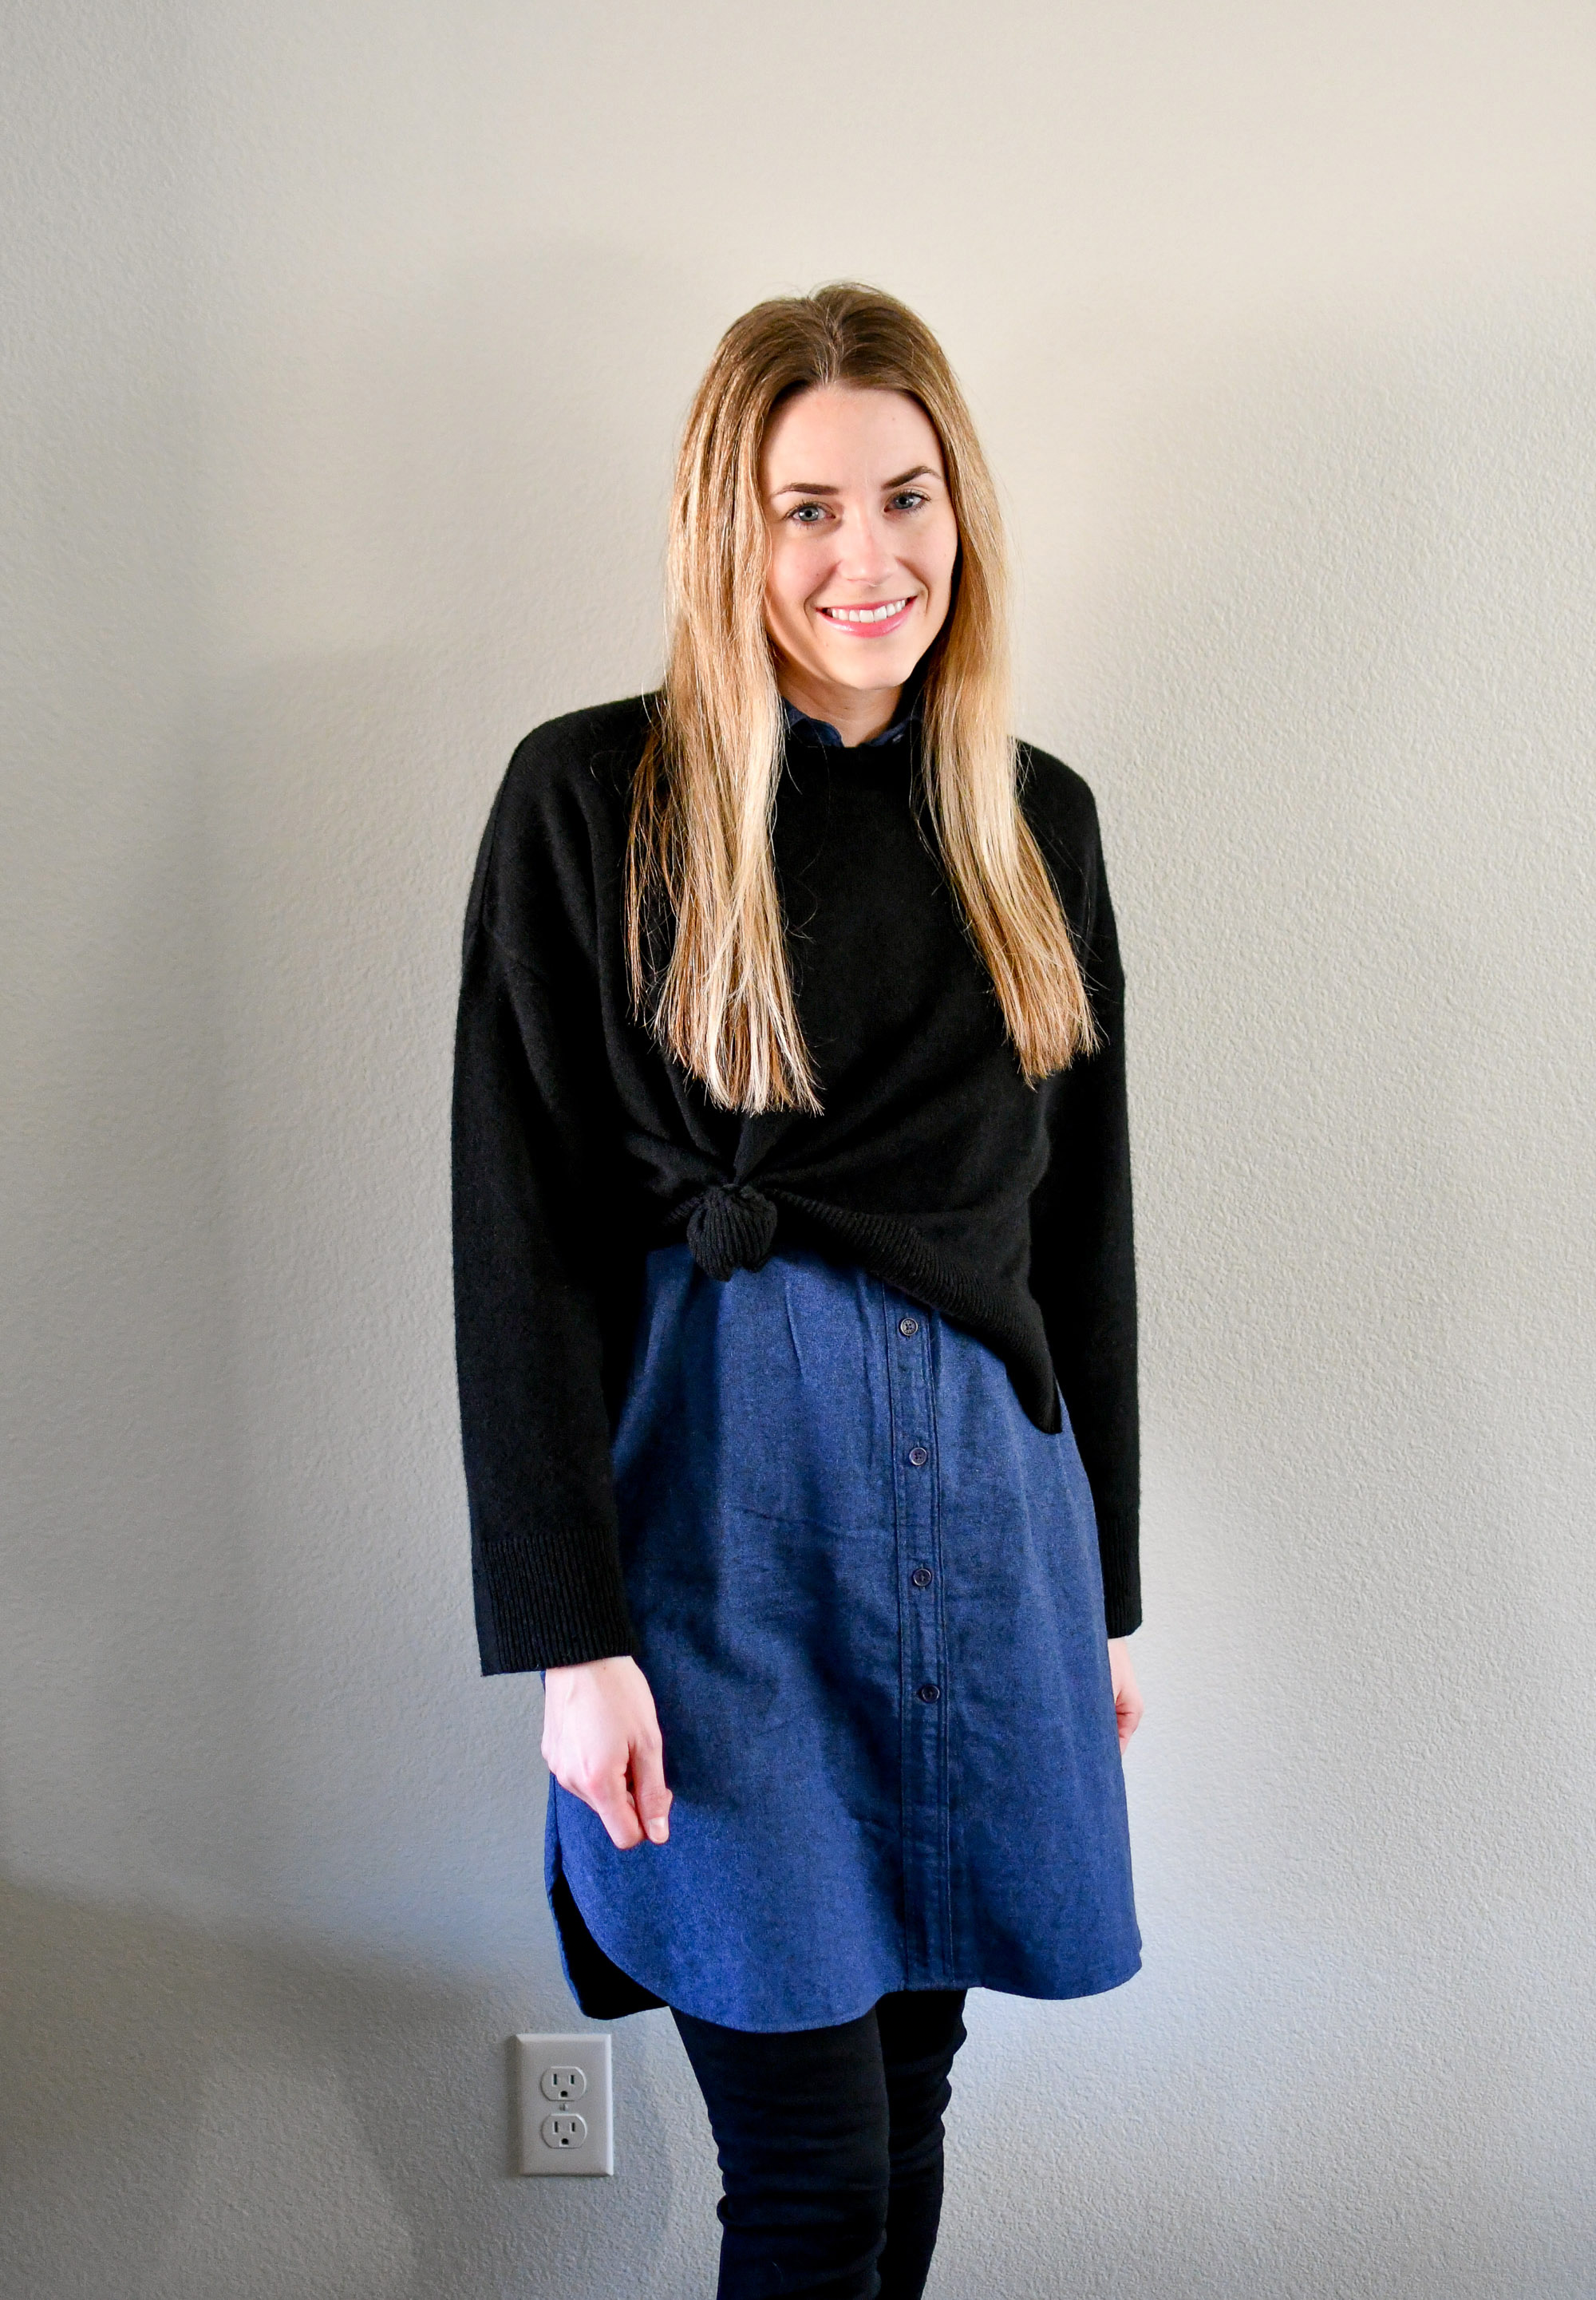 Cropped sweater winter outfit over shirt dress — Cotton Cashmere Cat Hair